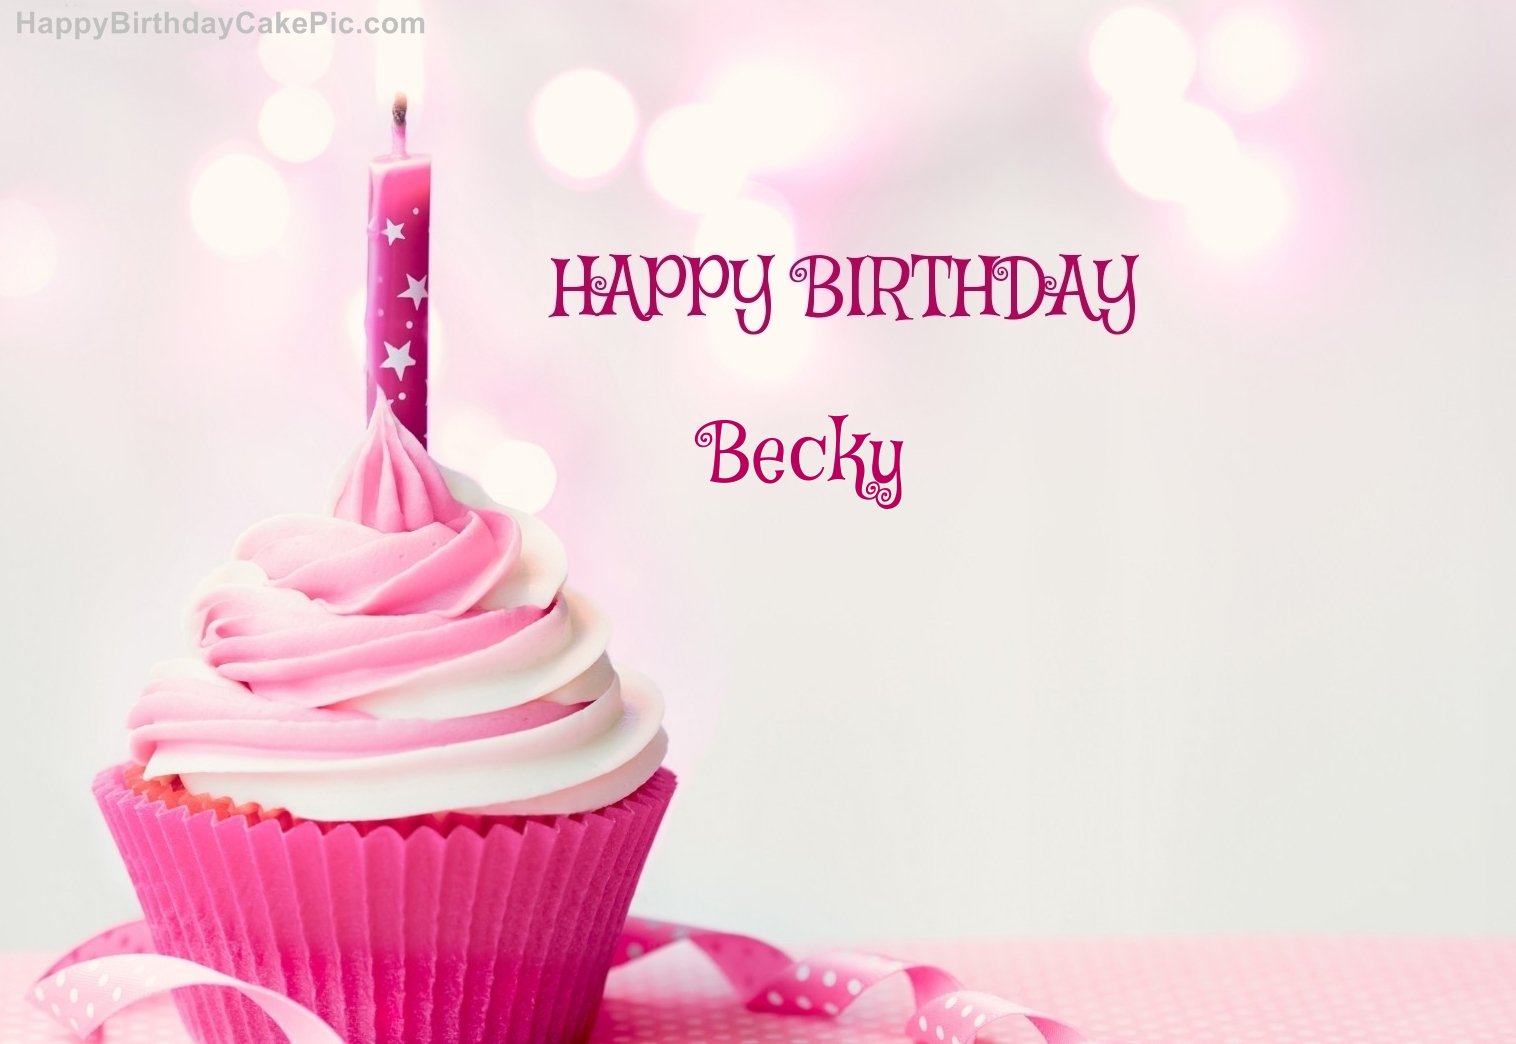 Happy birthday cupcake candle pink cake for becky write name on happy birthday cupcake candle pink cake altavistaventures Images